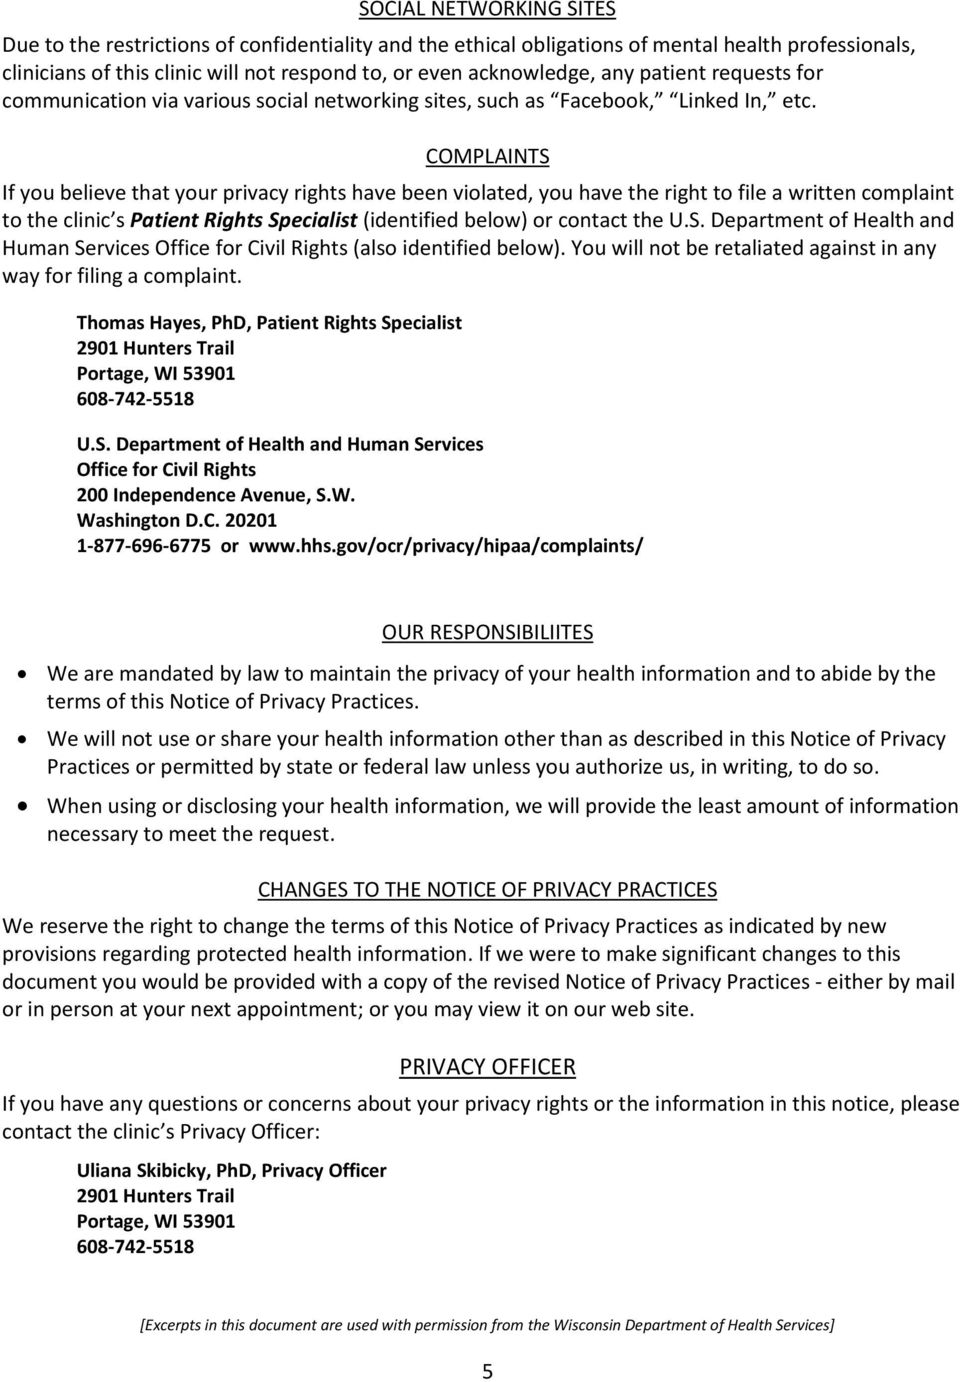 COMPLAINTS If you believe that your privacy rights have been violated, you have the right to file a written complaint to the clinic s Patient Rights Specialist (identified below) or contact the U.S. Department of Health and Human Services Office for Civil Rights (also identified below).